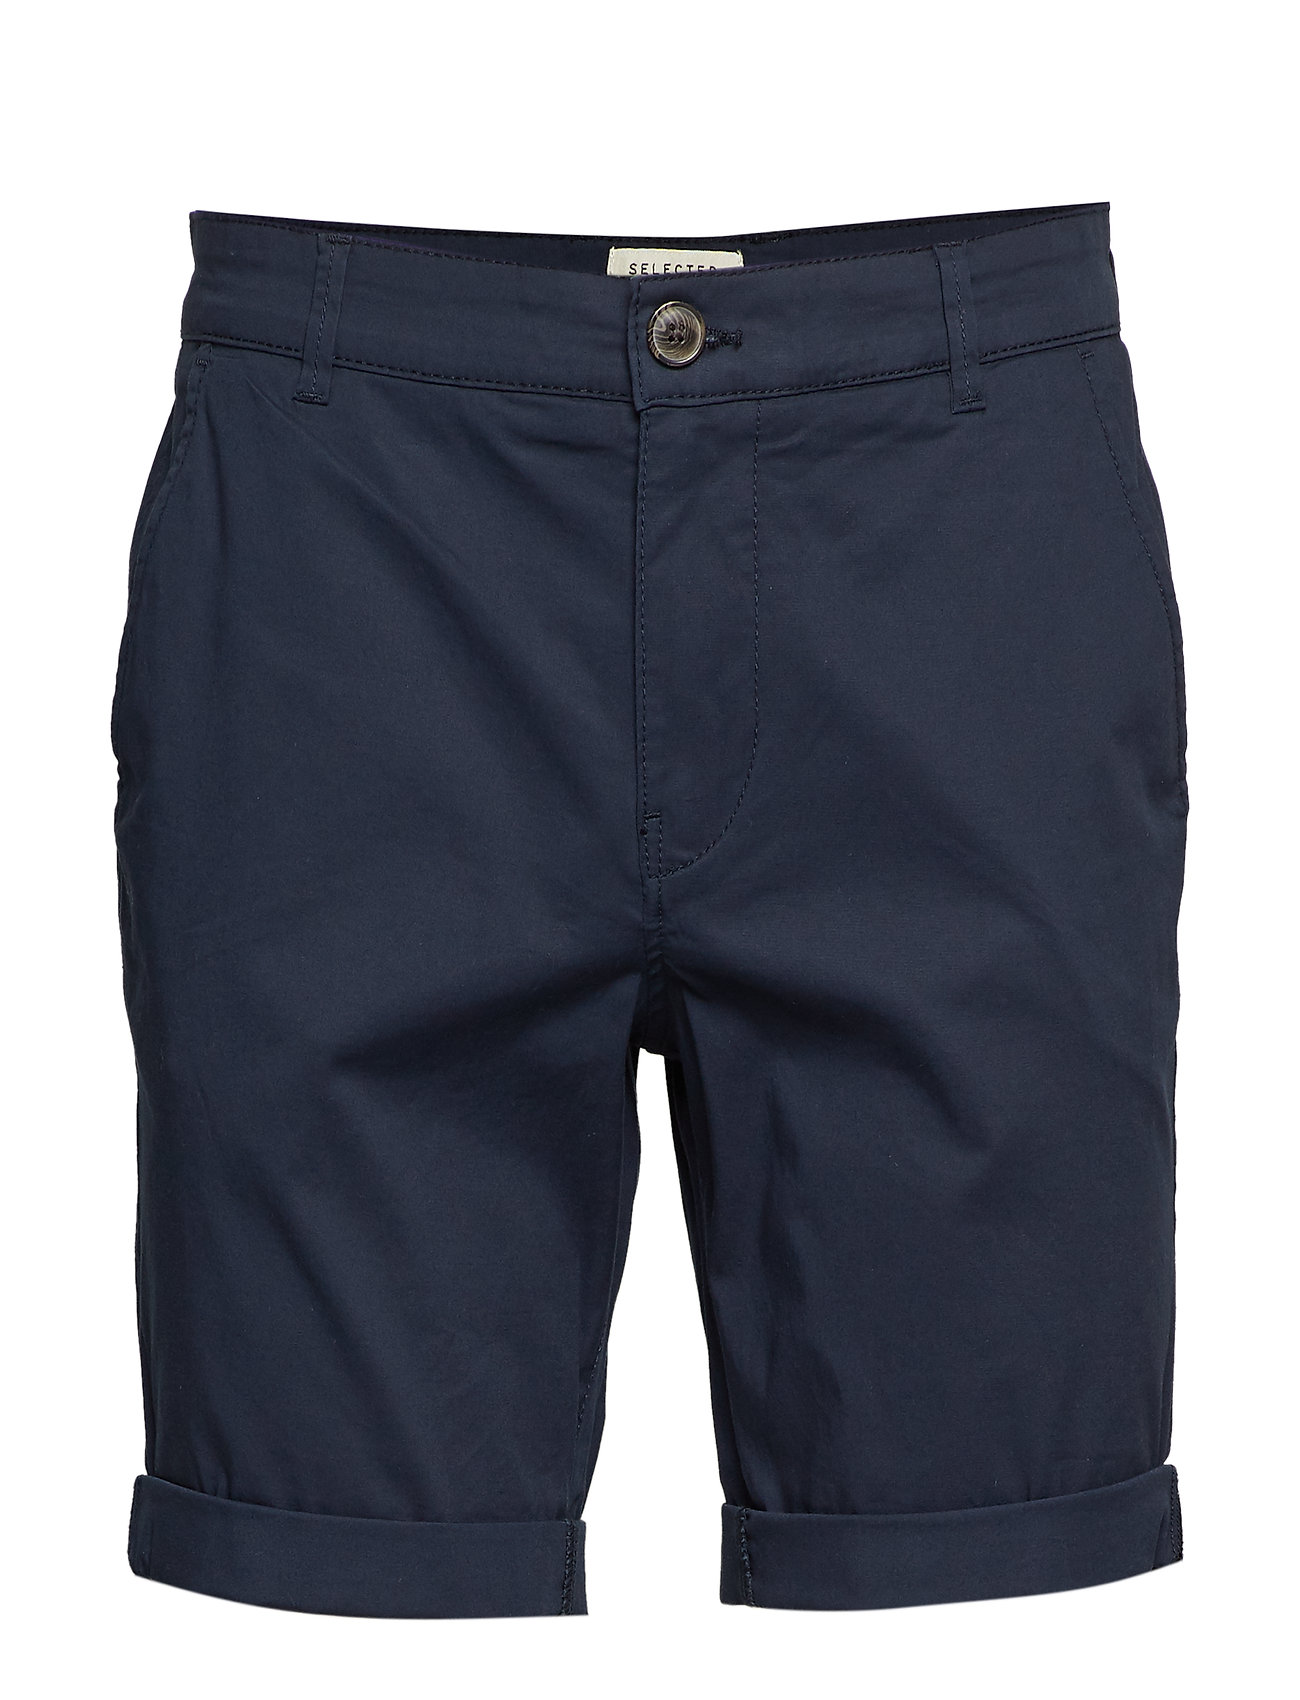 Selected Homme - SLHSTRAIGHT-PARIS SHORTS W NOOS - spodenki chinos - dark sapphire - 0